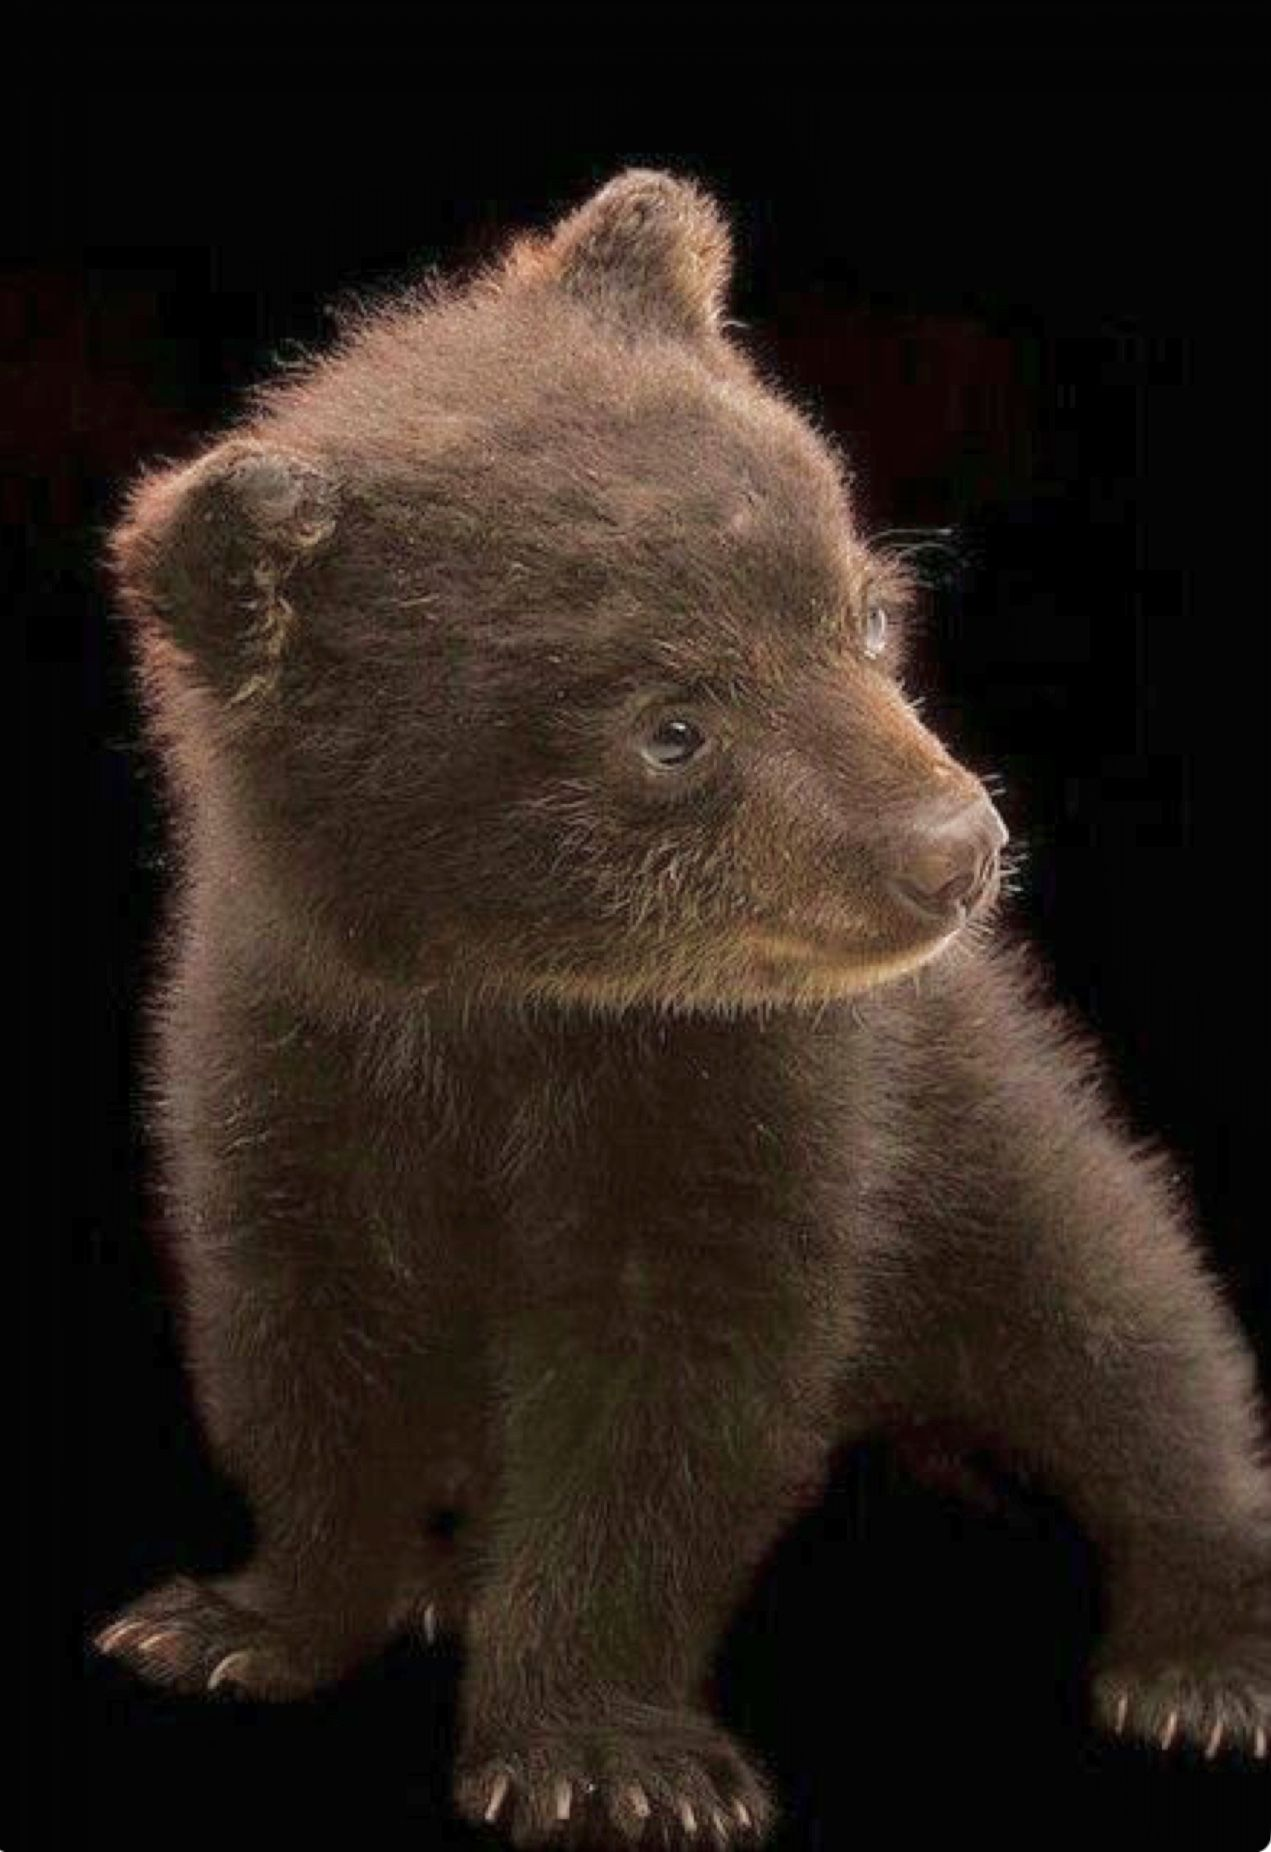 Adorable grizzly bear cub So cute when SMALL